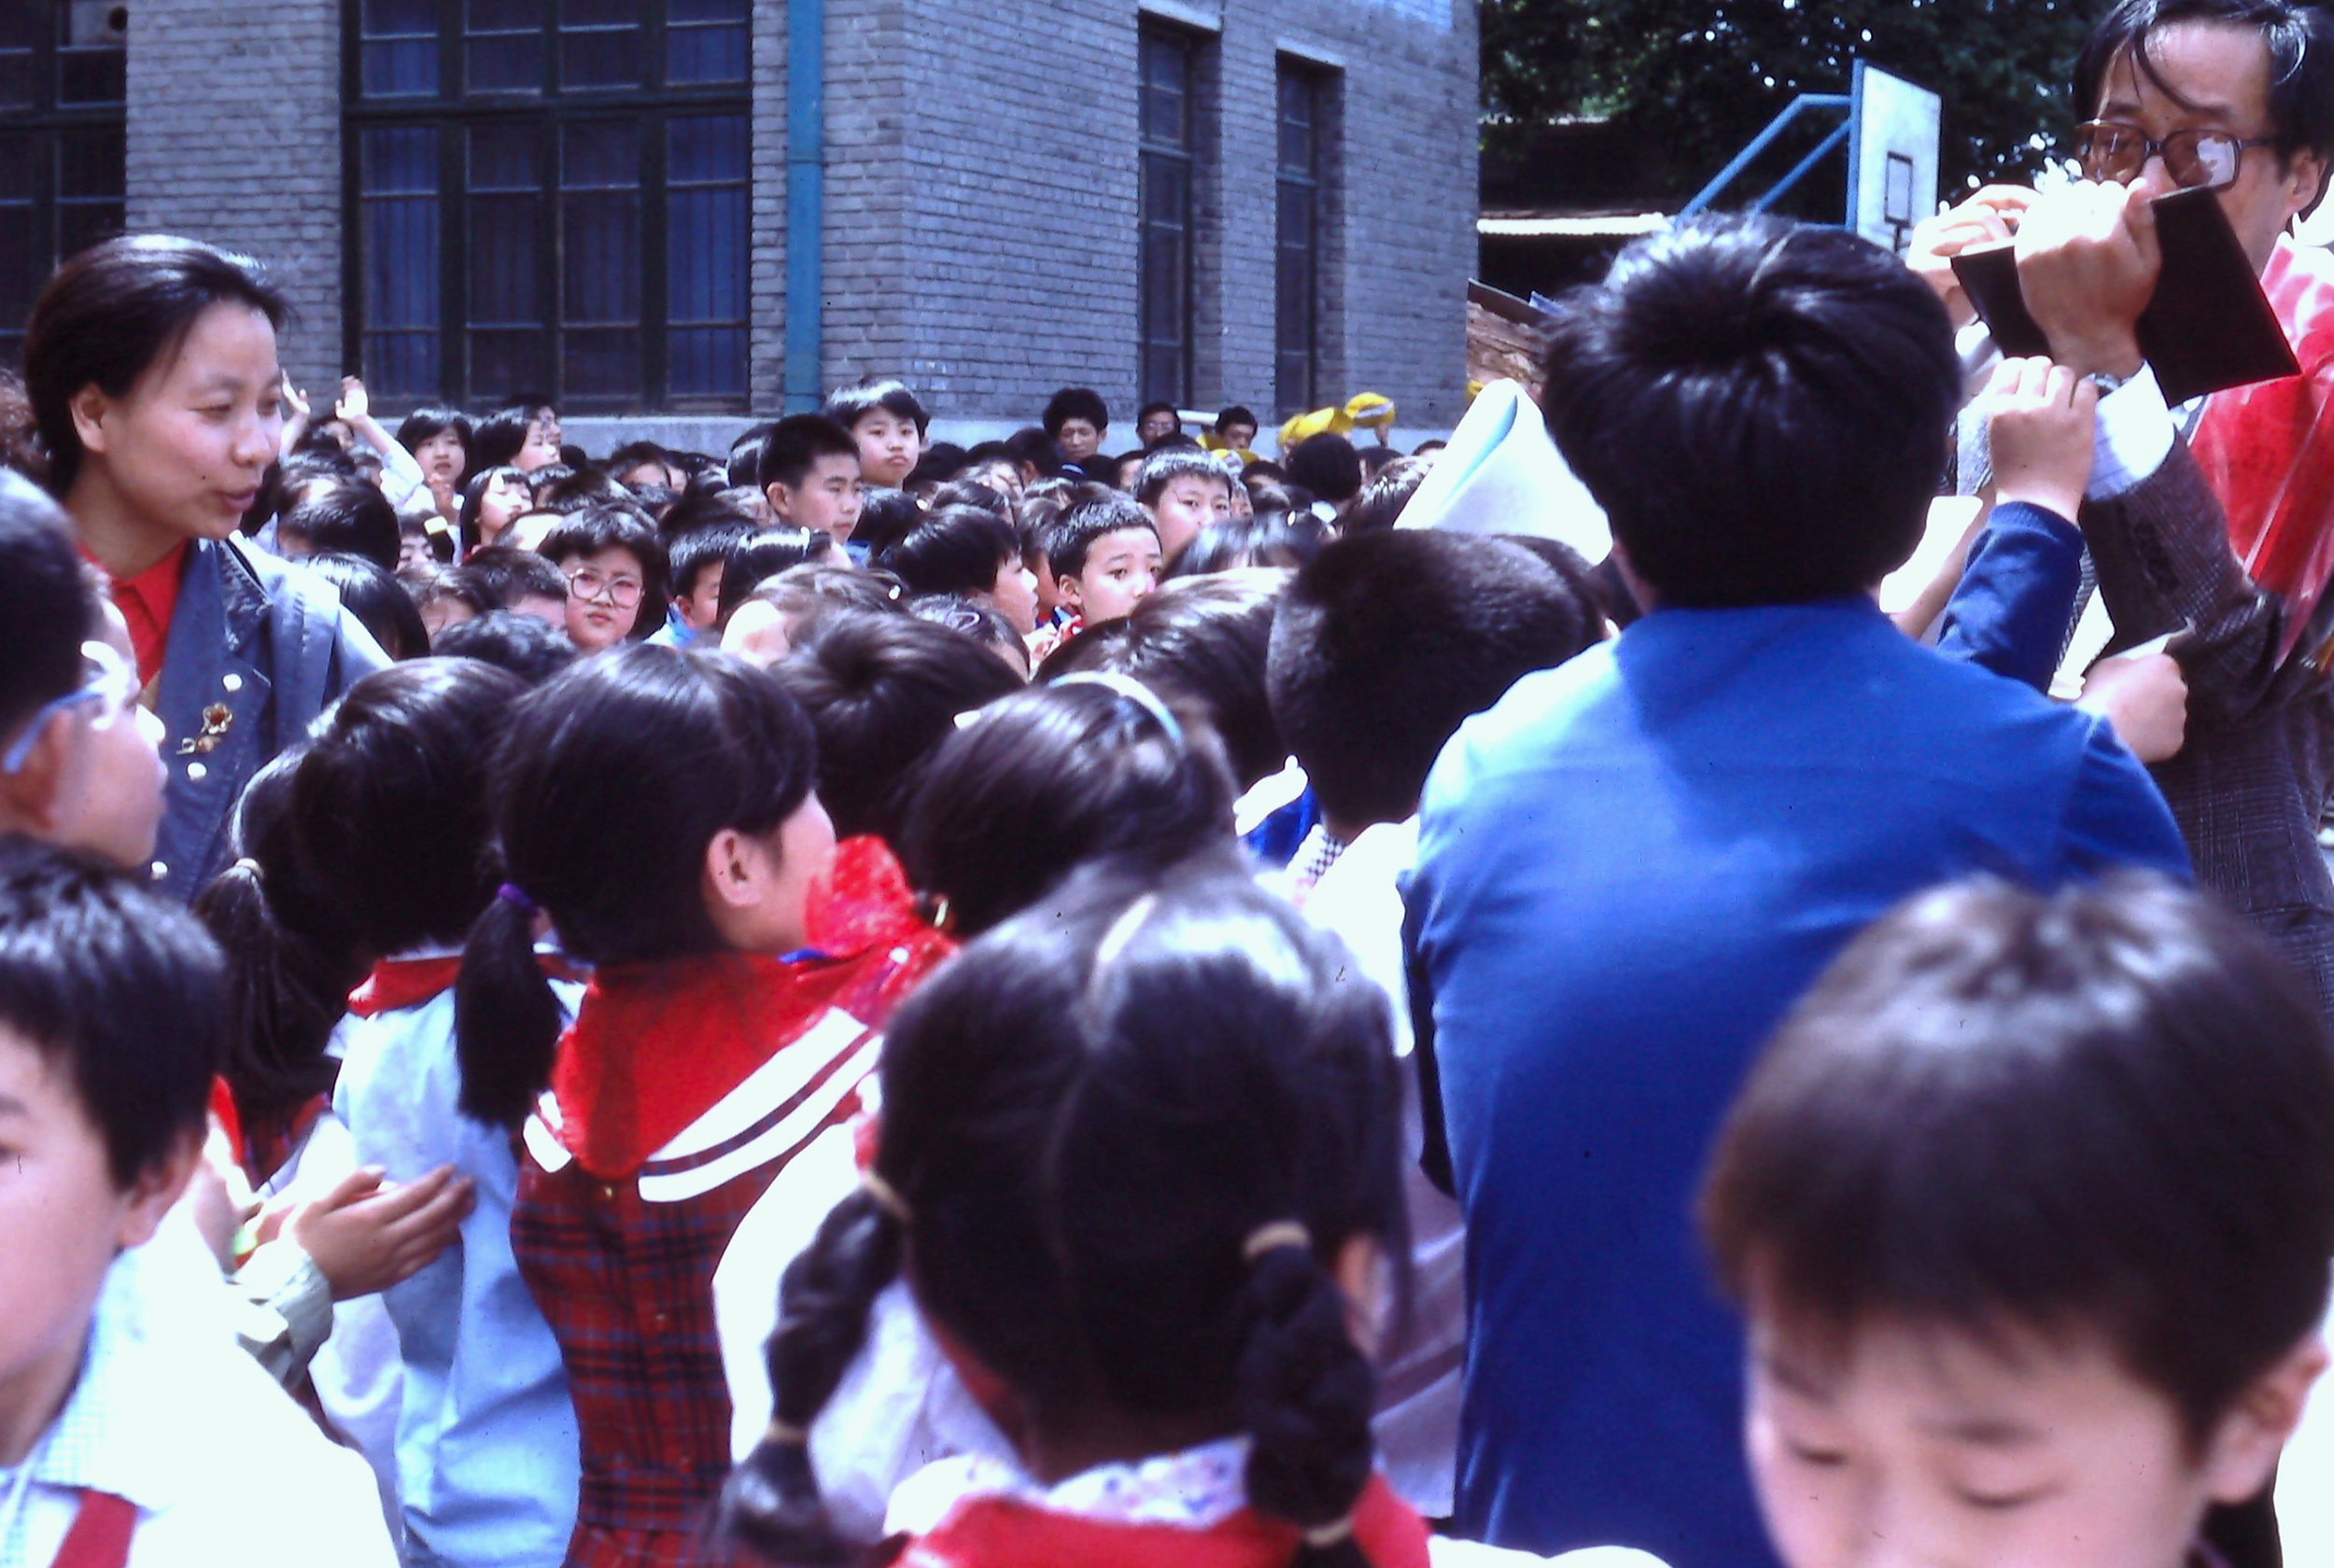 Expedition team member Qin Dahe signs autographs for a sea of Beijing children at the successful completion of the nearly 4,000-mile 1990 International Trans-Antarctica Expedition.